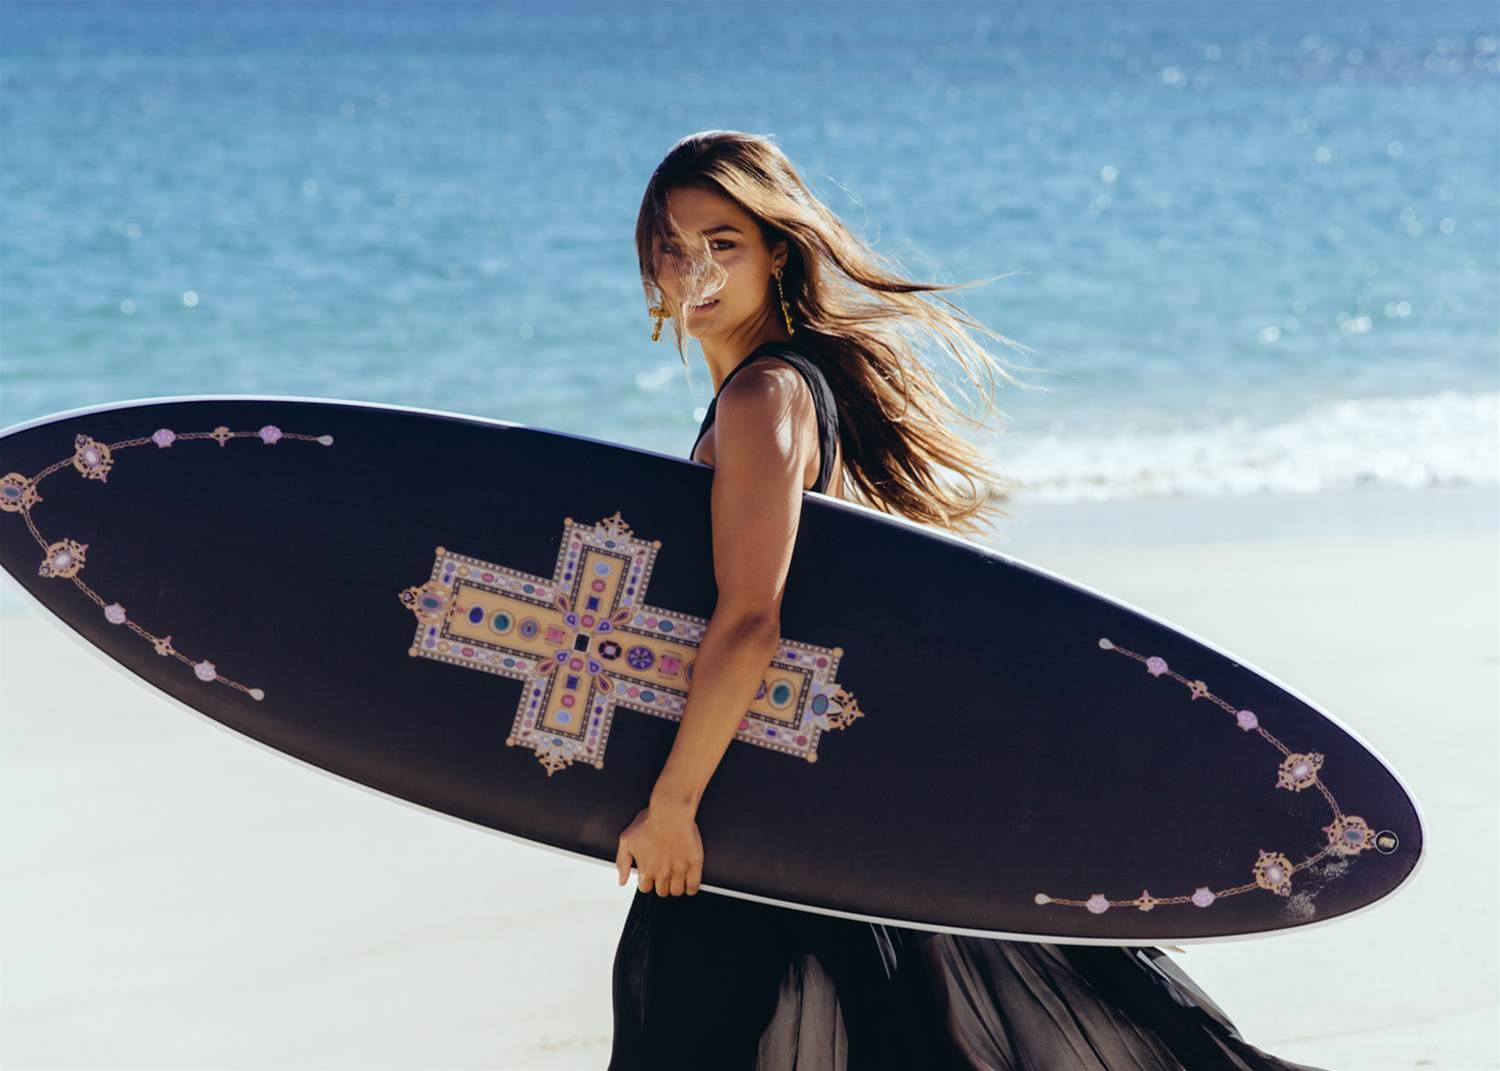 High fashion Meets Function On These Boards